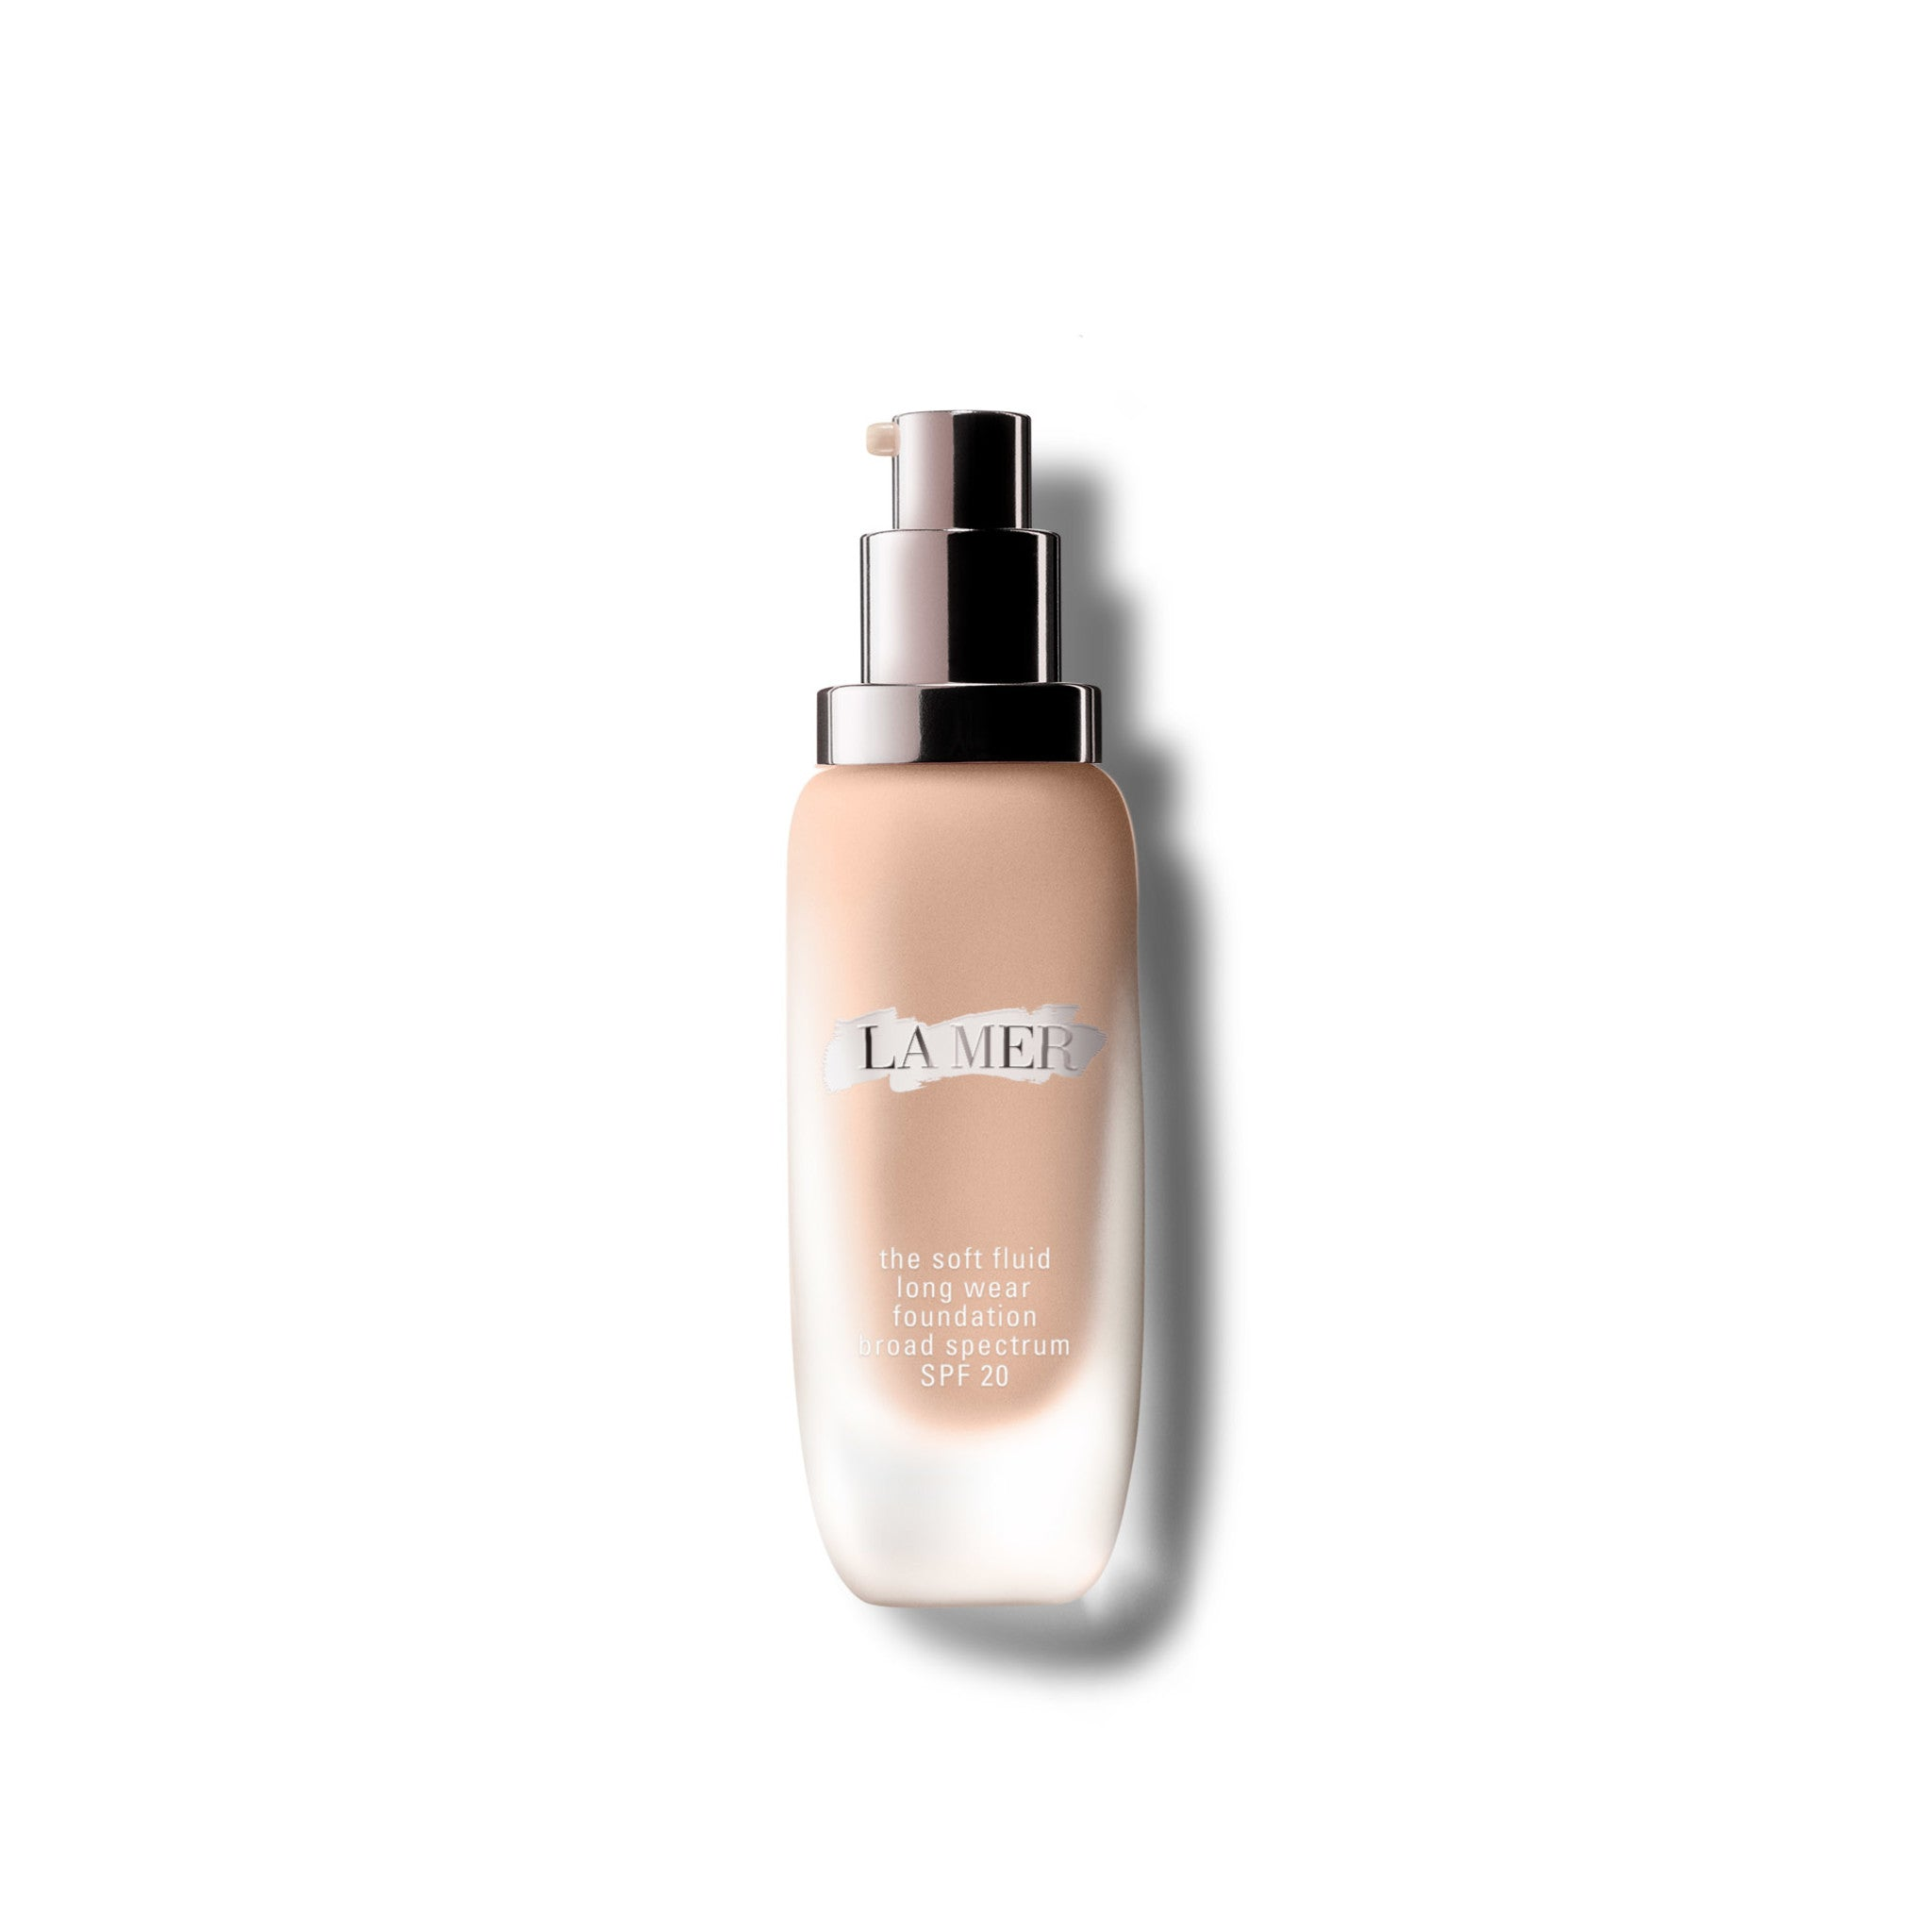 The Soft Fluid Long Wear Foundation SPF 20